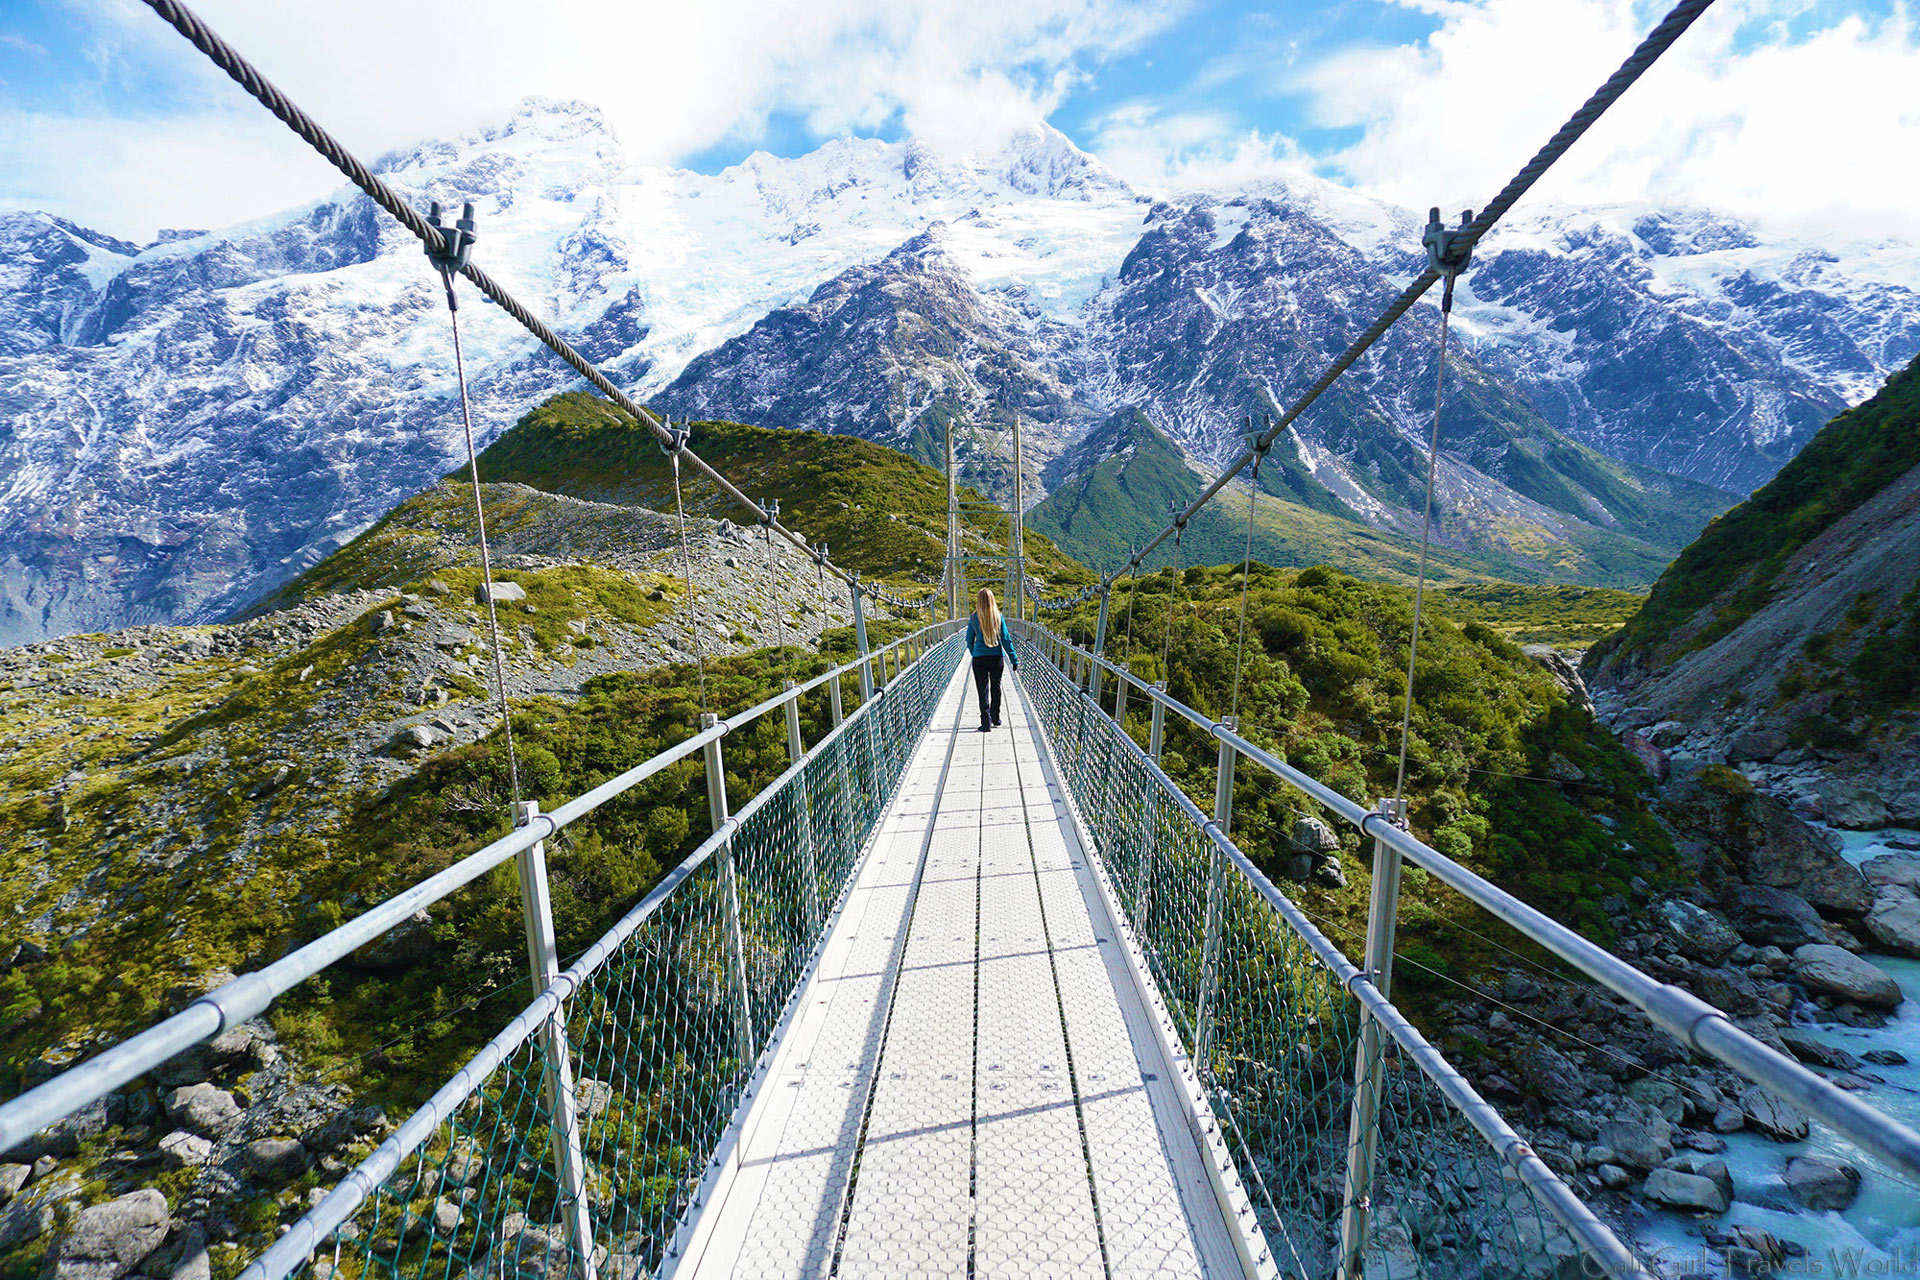 Female Travel blogger walking down suspension bridge on the Hooker Valley Track near glaciers at Mount Cook in South Island, New Zealand.